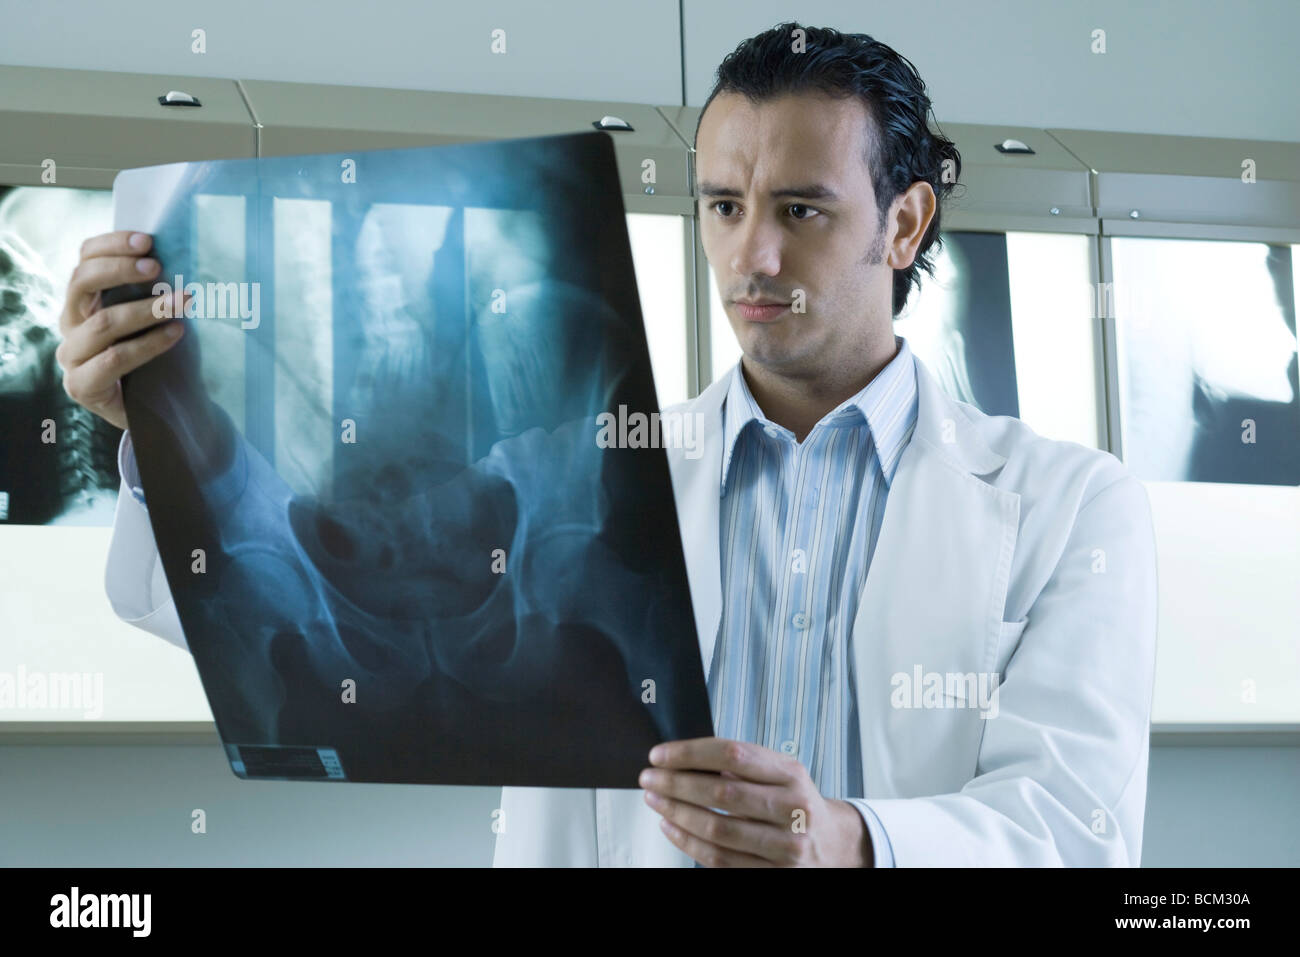 Young doctor looking at x-ray - Stock Image